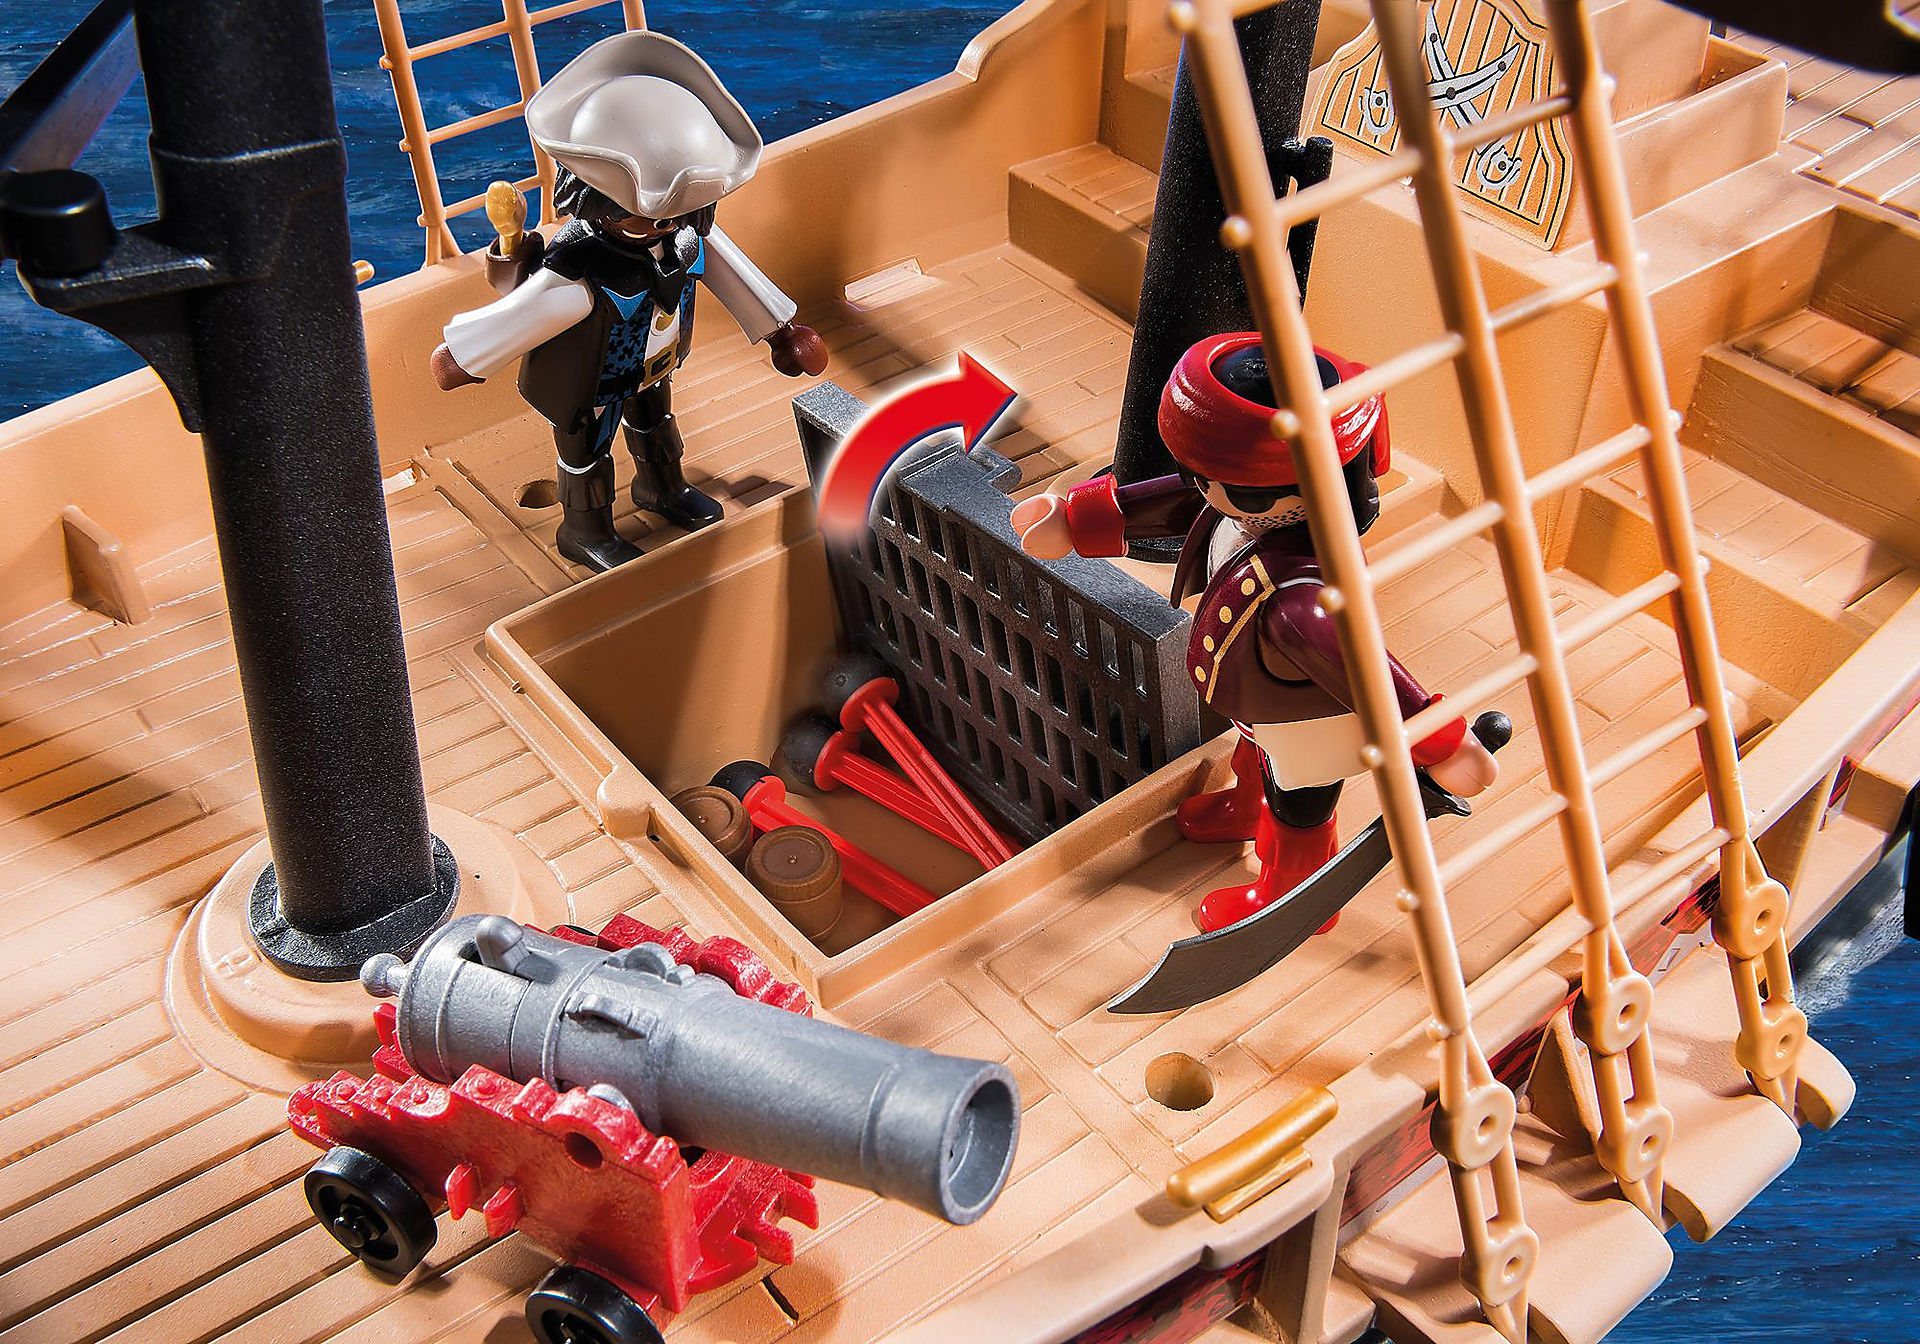 http://media.playmobil.com/i/playmobil/6678_product_extra2/Piraten-Kampfschiff